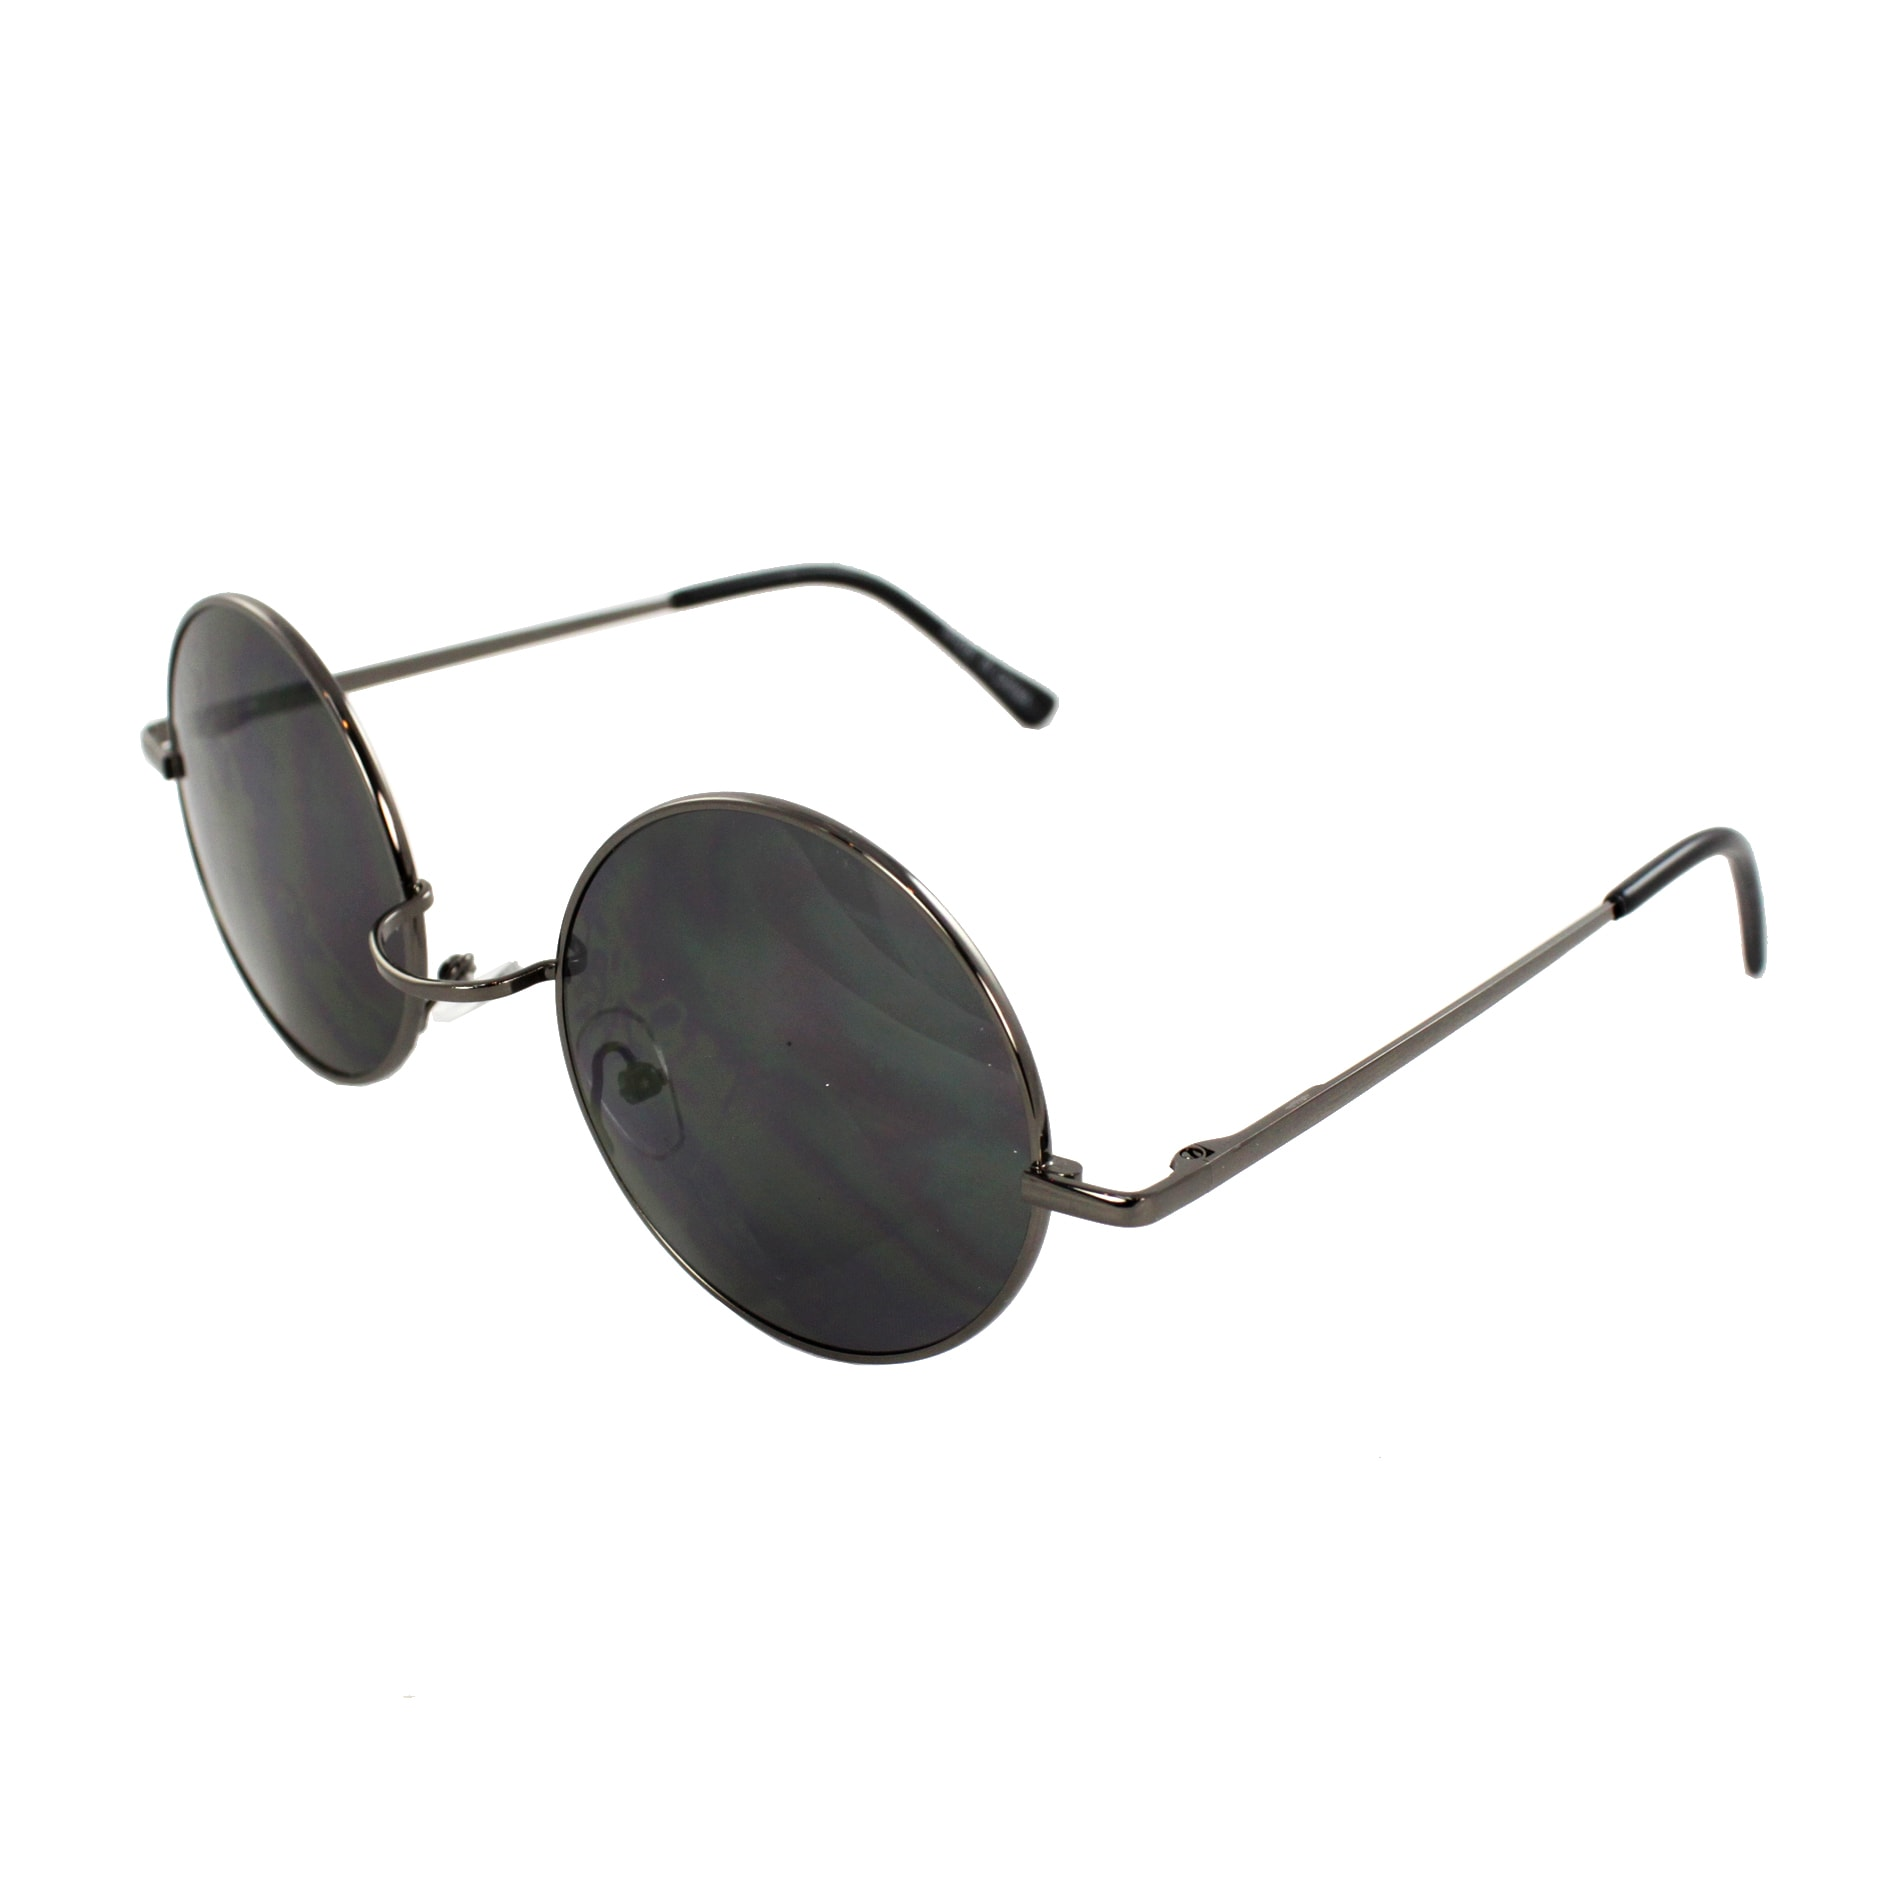 Retro Round Sunglasses Black Frame and Black Lenses for Women and Men